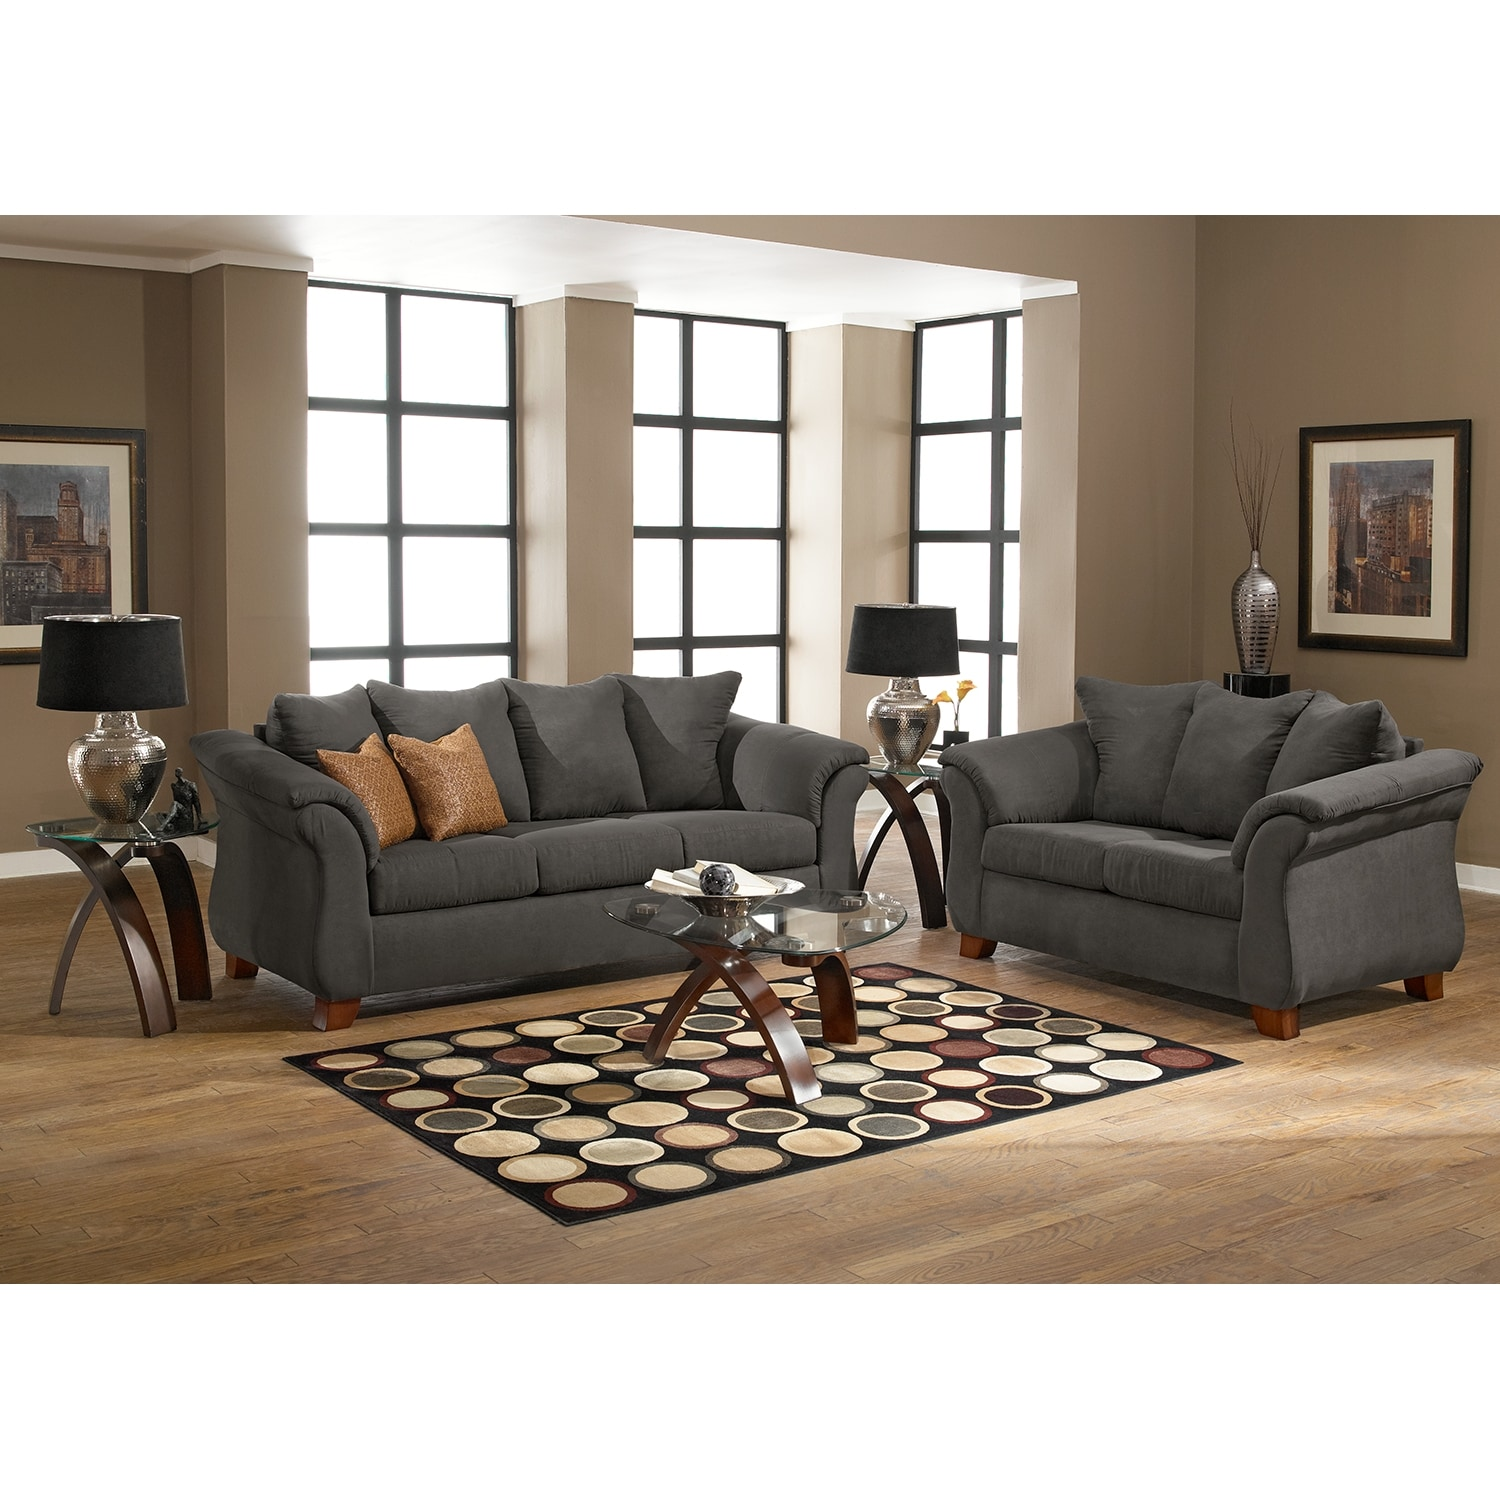 Sofa And Loveseat Sets Www Redglobalmx Org ~ Brown Sofa And Loveseat Sets